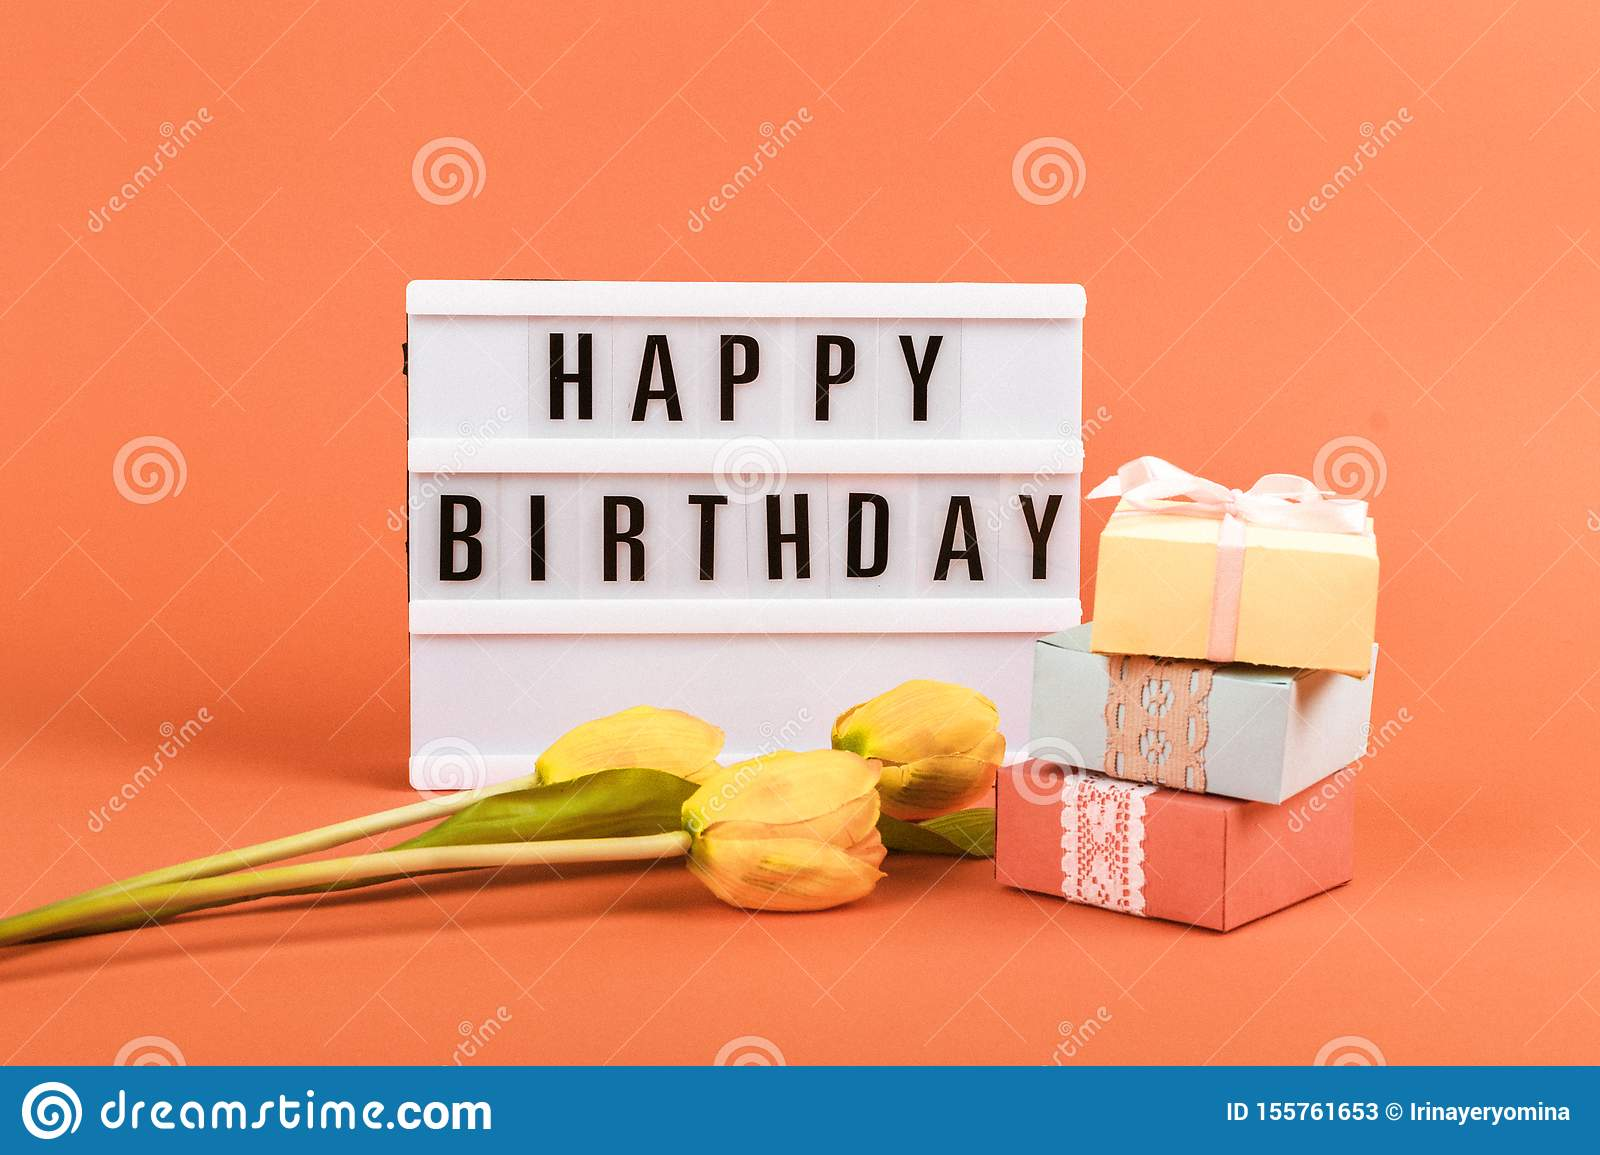 Happy birthday word light box, Yellow tulips flowers, gift boxes on coral background. Festive Greeting birthday background